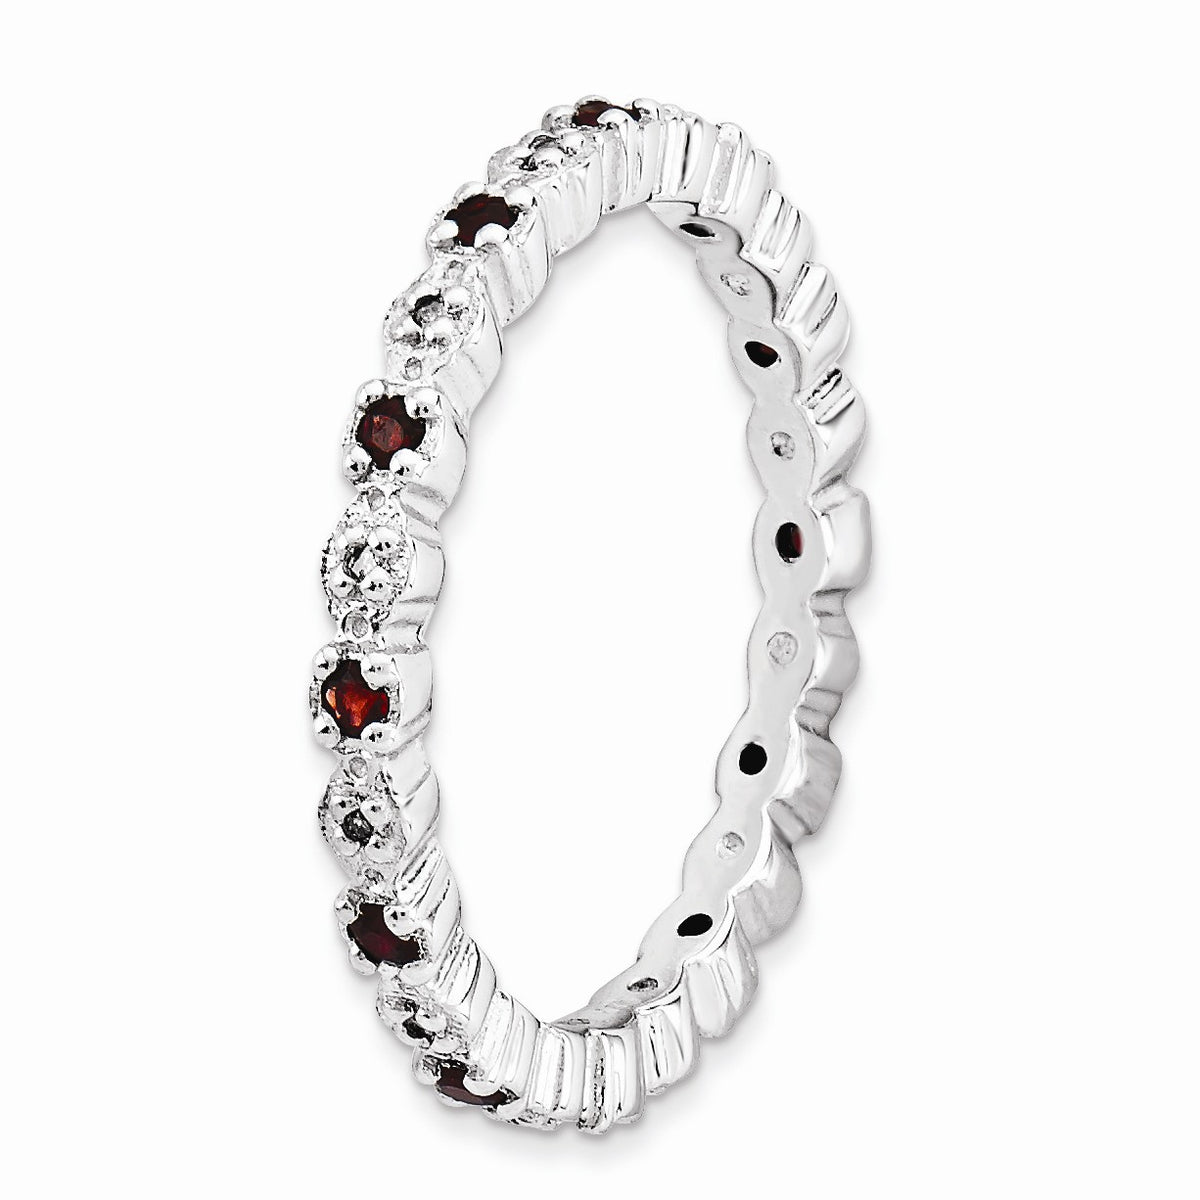 Alternate view of the 2.25mm Sterling Silver, Garnet & .04 Ctw Diamond Stackable Band by The Black Bow Jewelry Co.